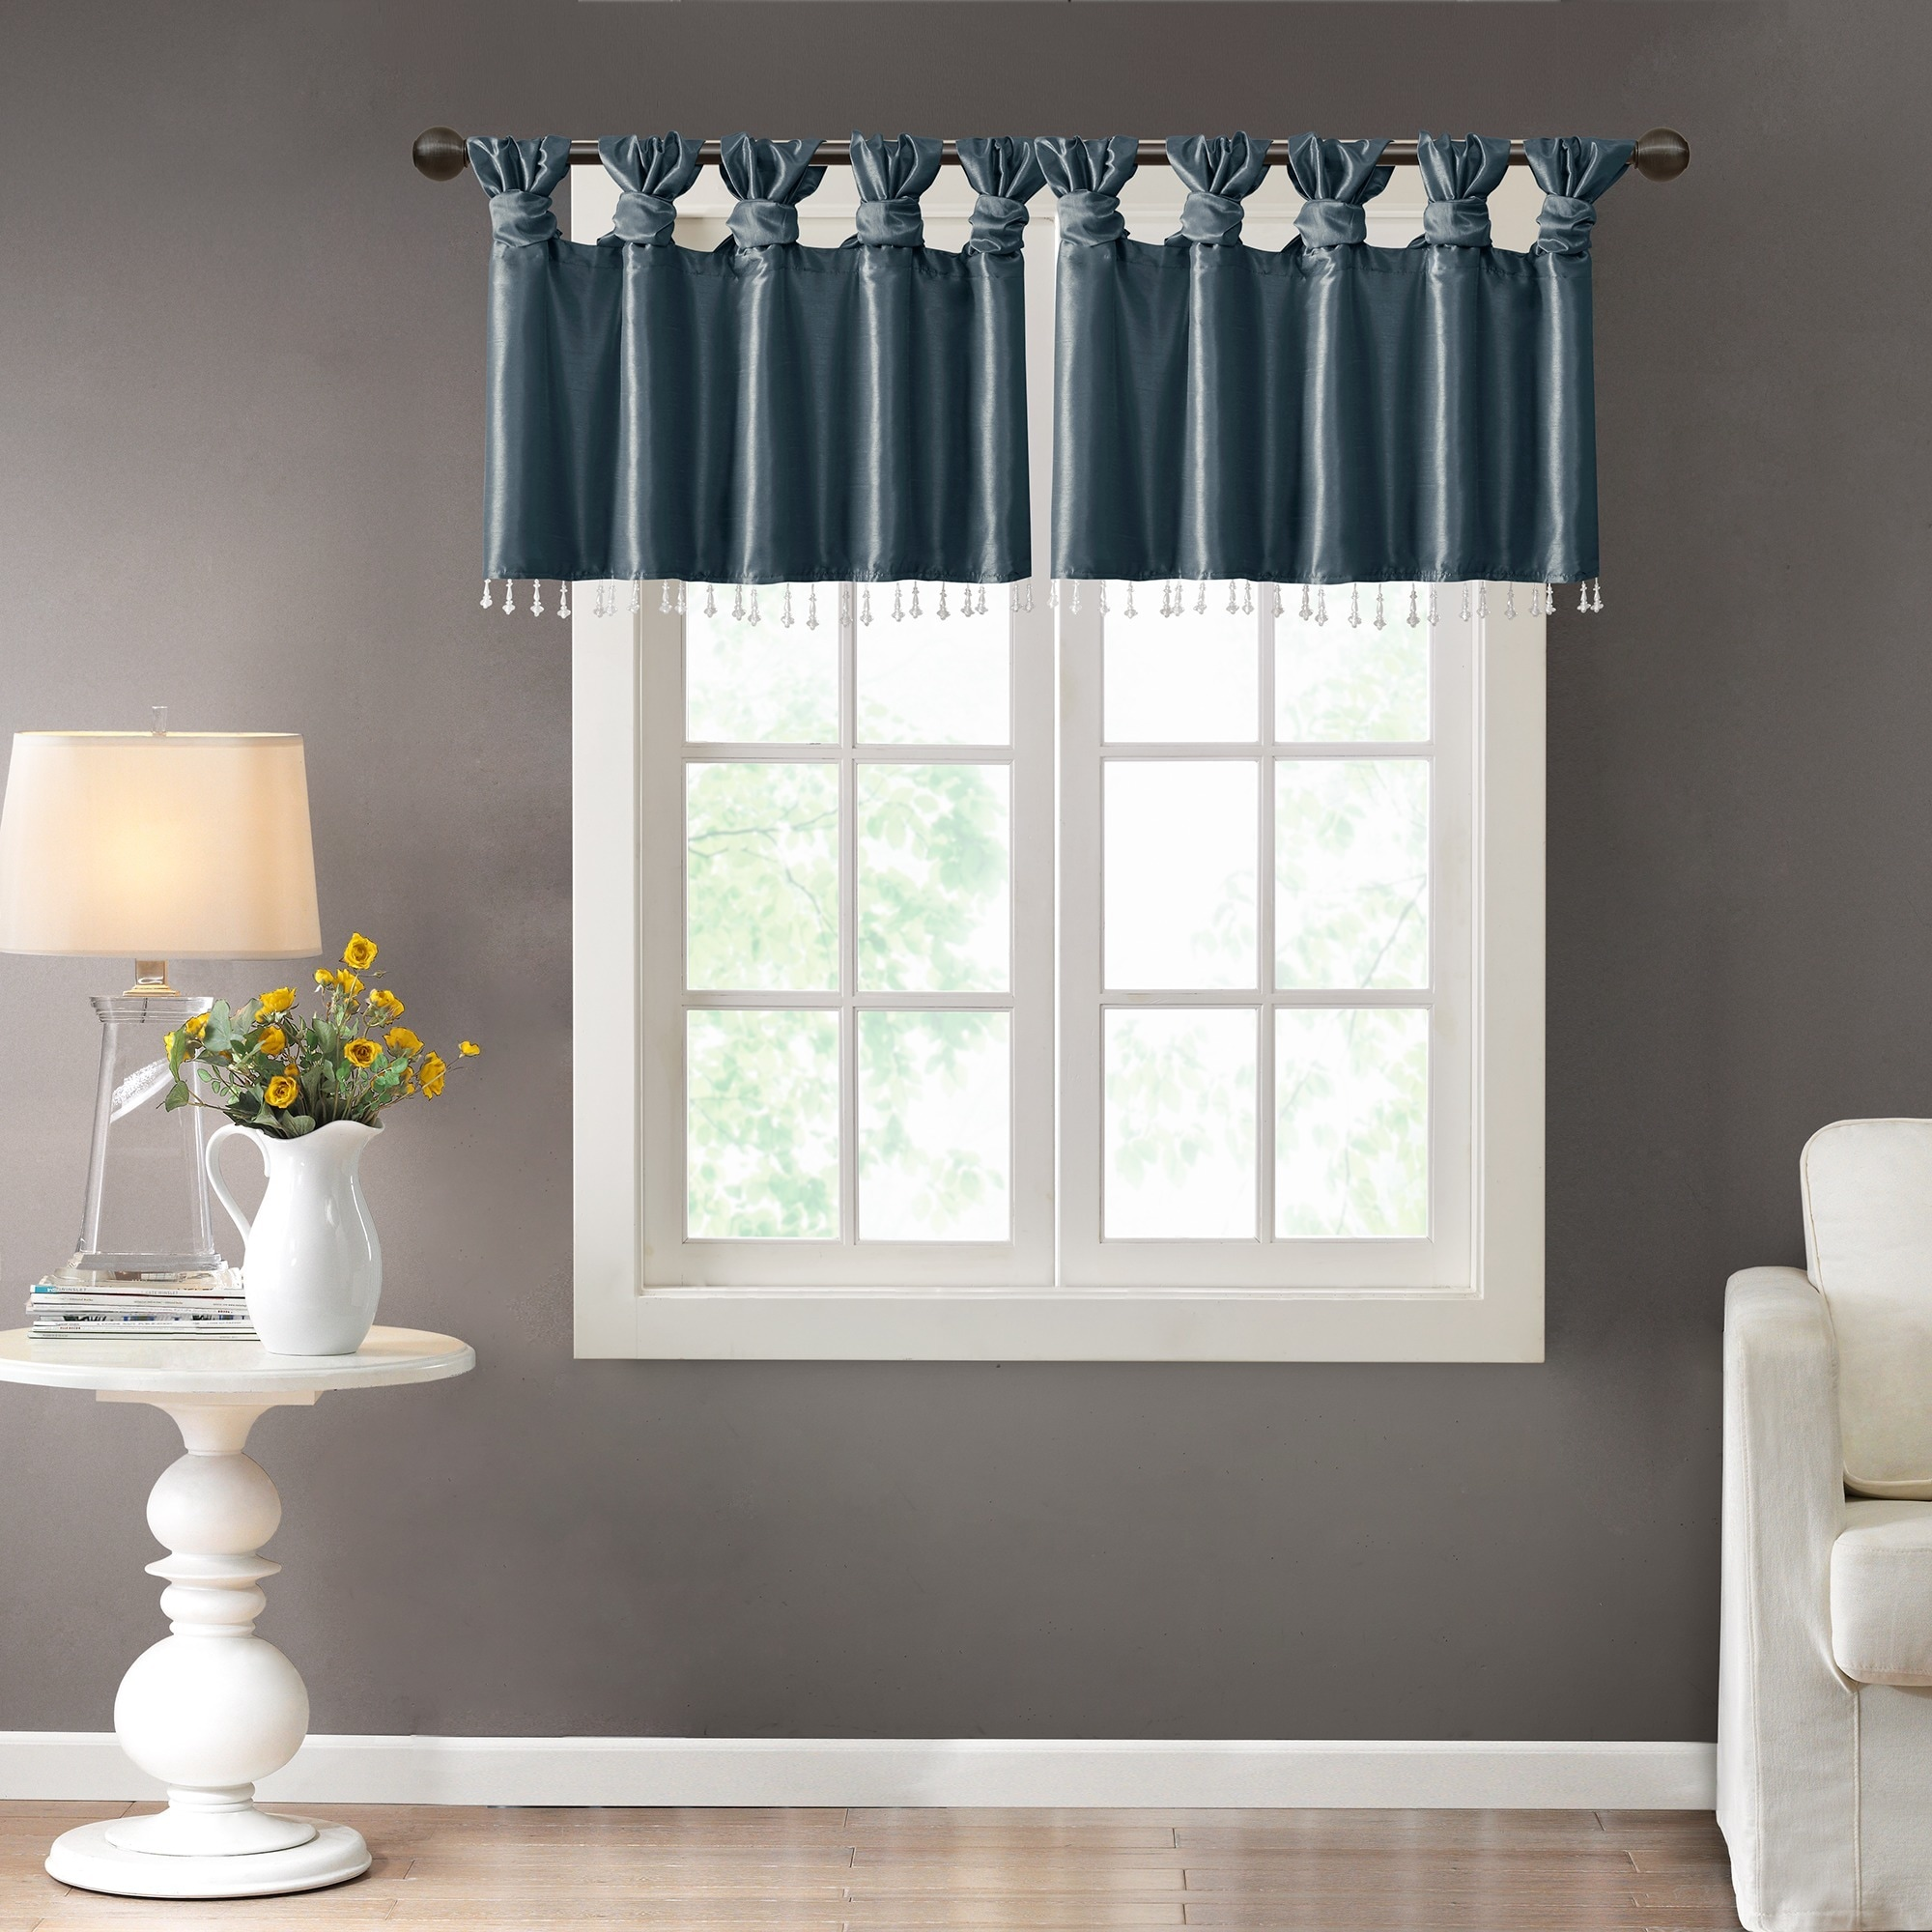 pattern valances up curtains museosdemolina windows valance top tie shade info scalloped for